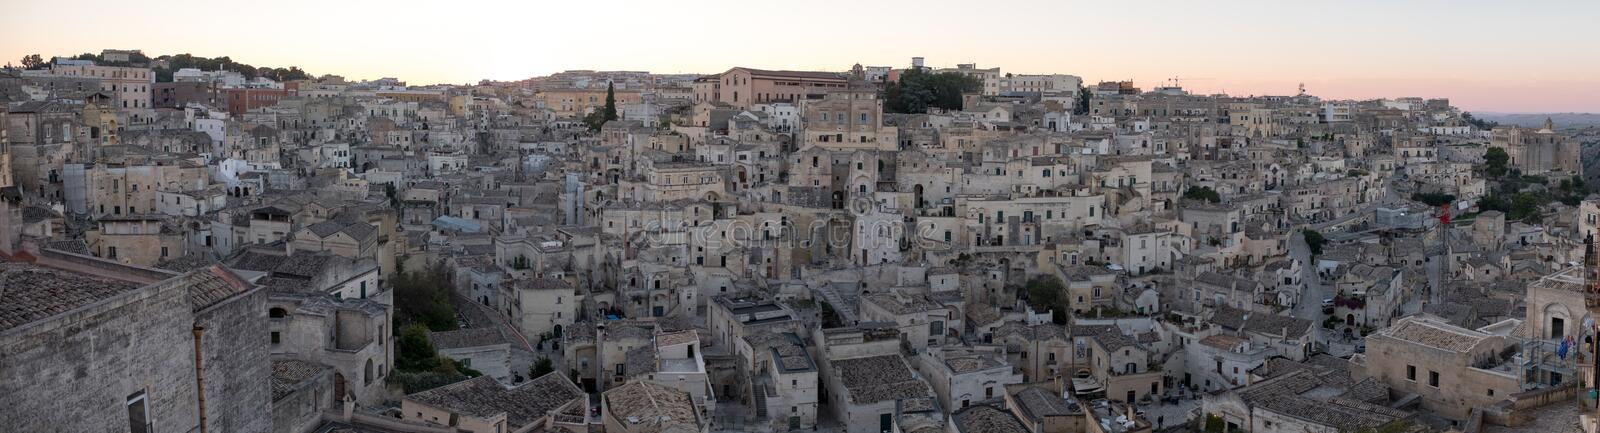 Panorama of houses built into the rock in the cave city of Matera, Sassi di Matera, Basilicata Italy. Matera has been designated European Capital of Culture royalty free stock image